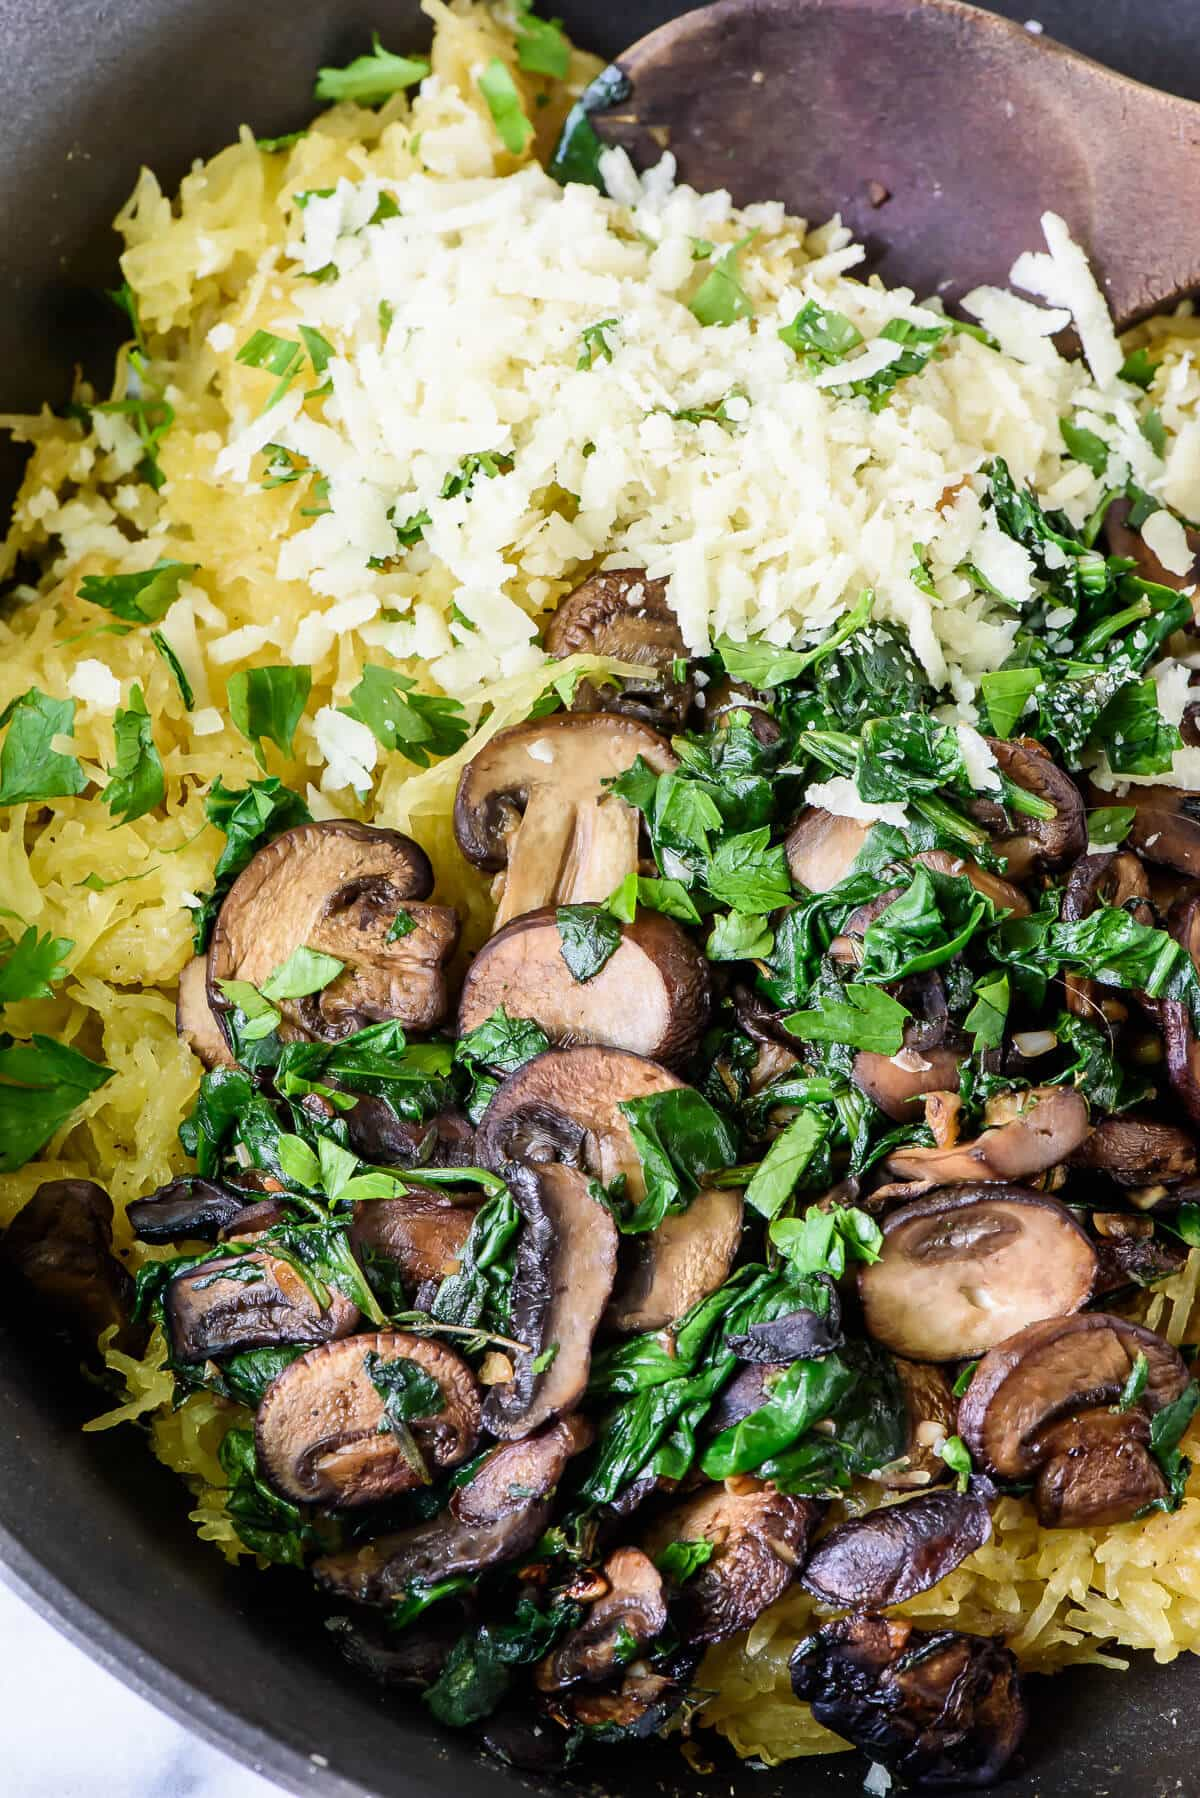 Best Ever Roasted Spaghetti Squash with Parmesan Cheese, Mushrooms, and Herbs